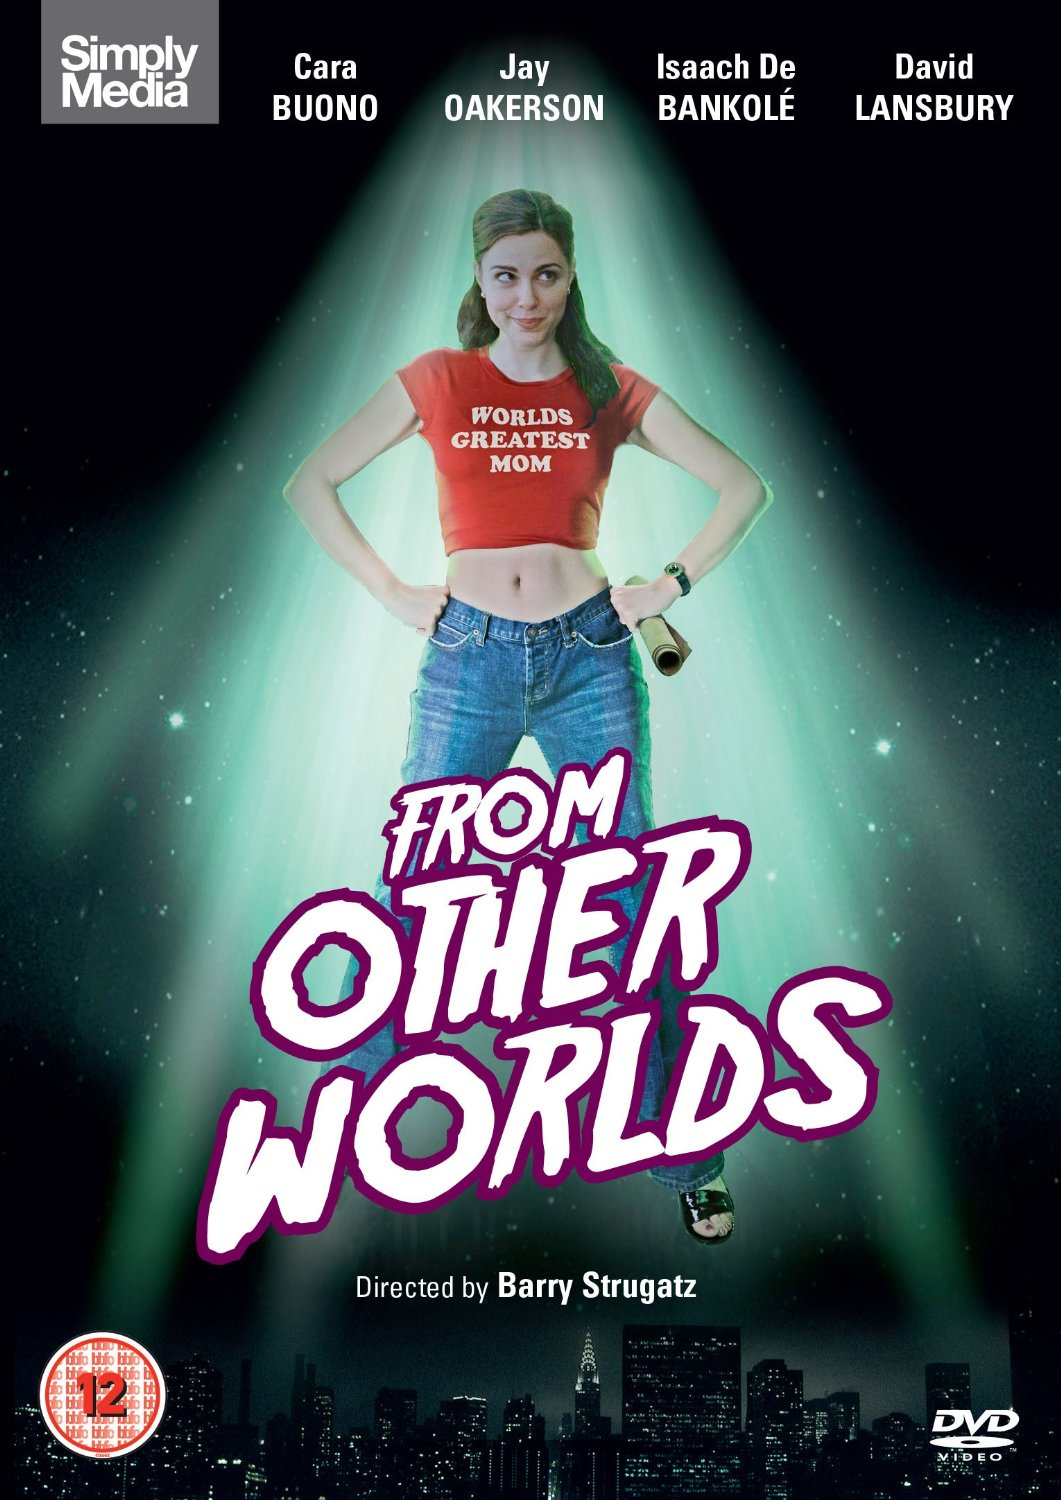 From Other Worlds DVD review: better late than never?